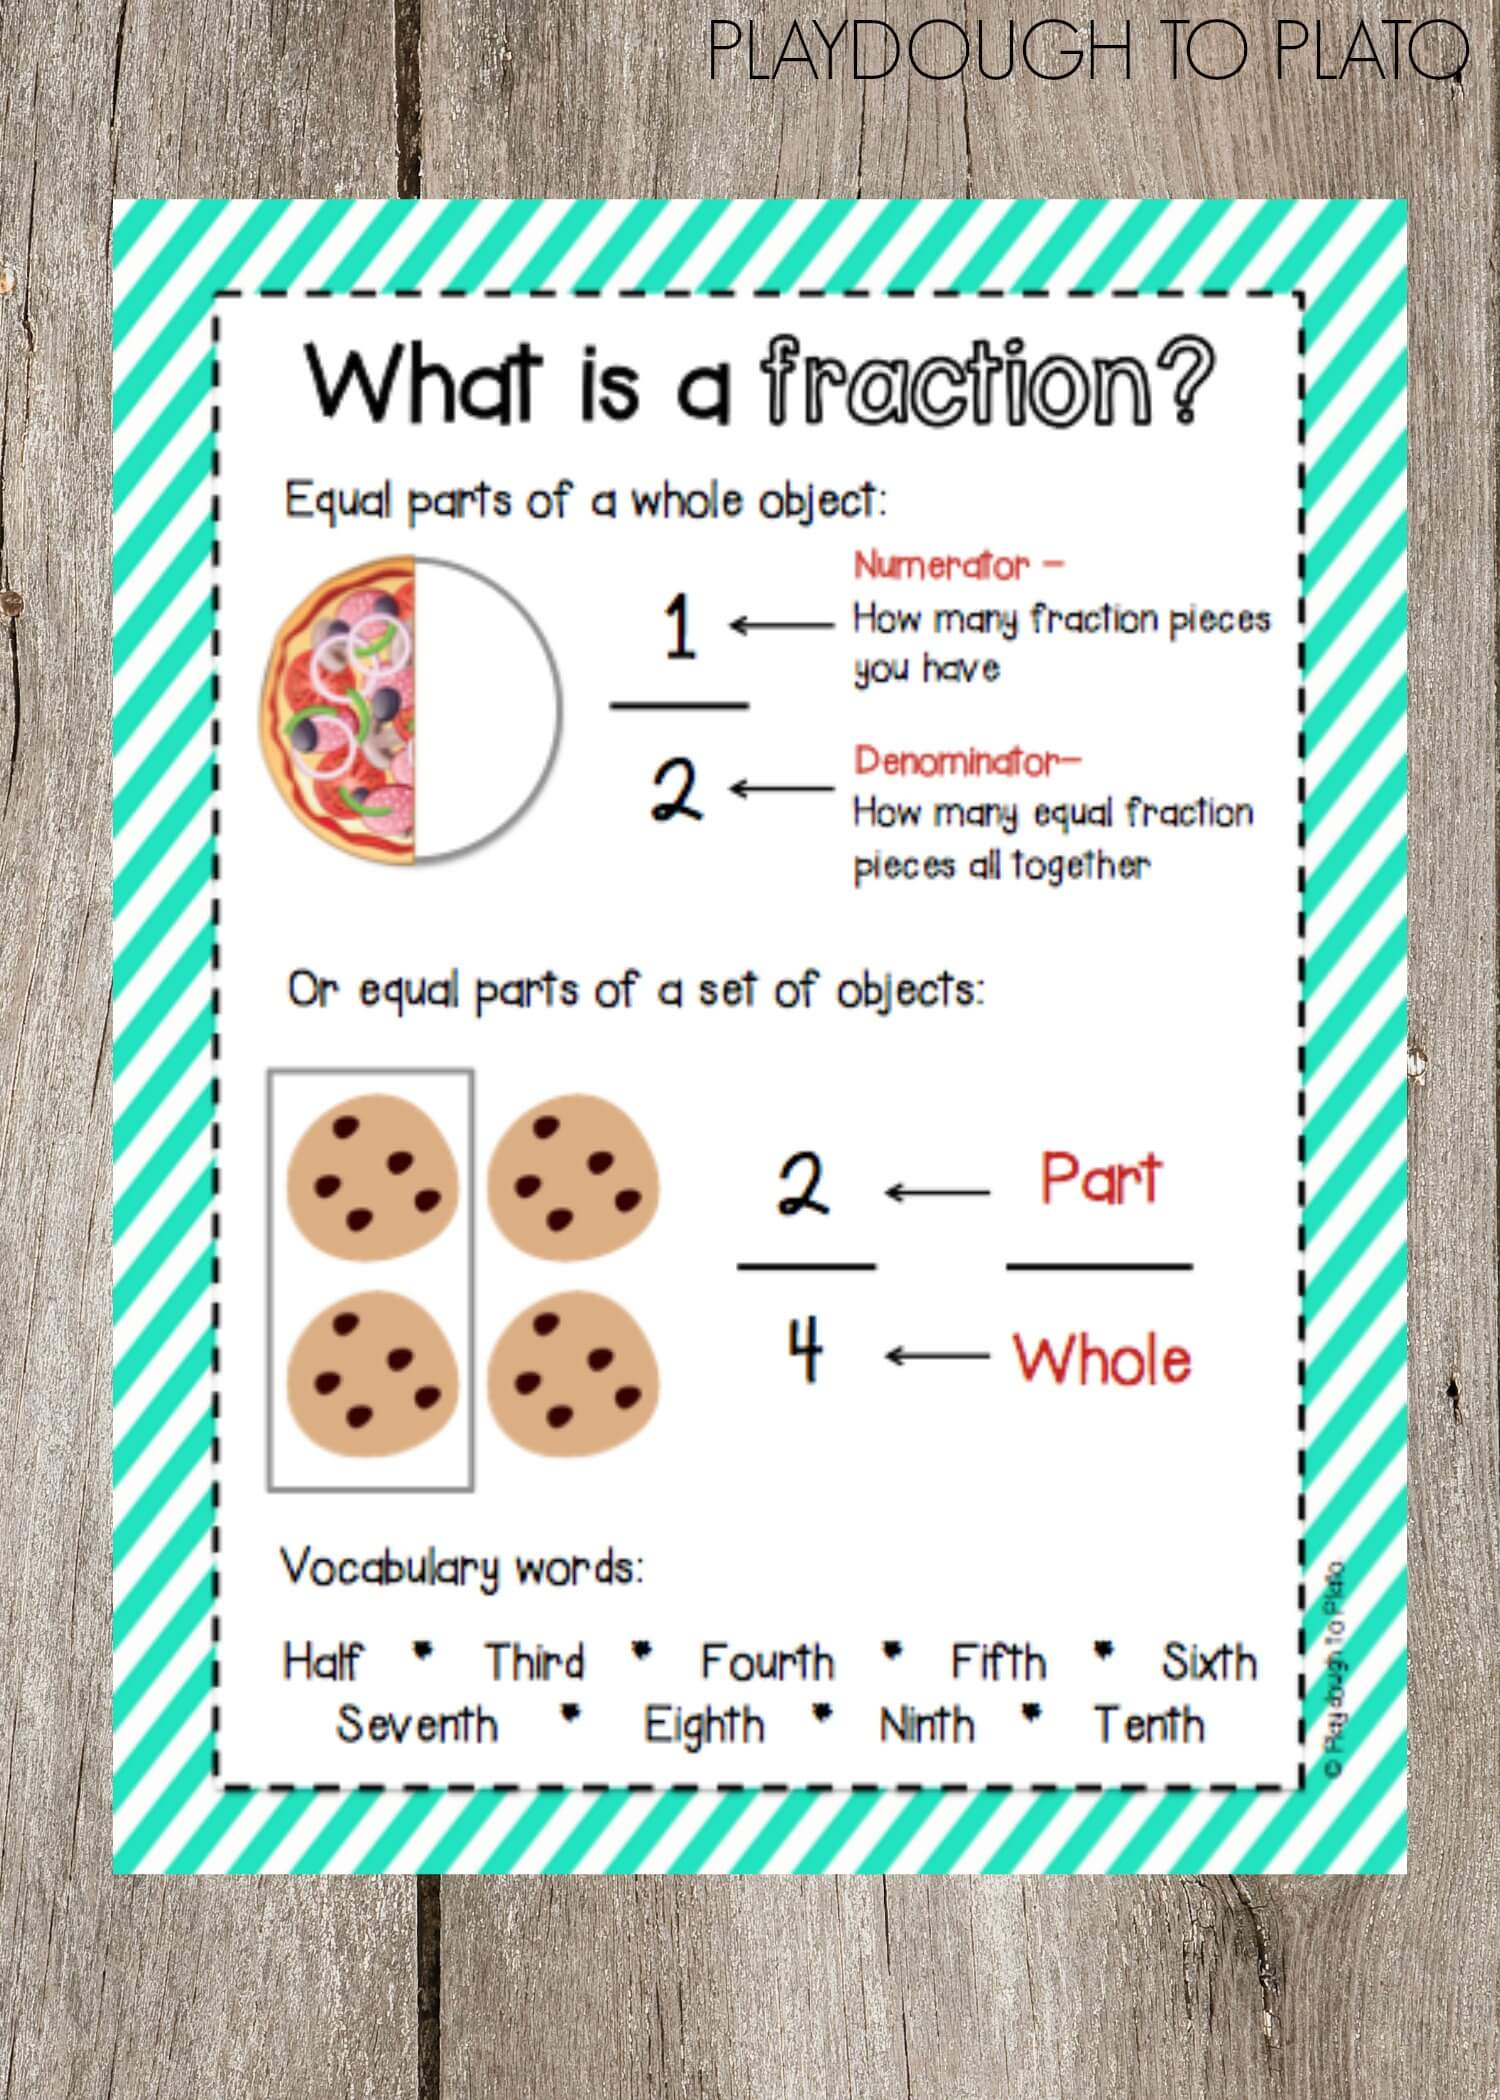 fraction activity pack - playdough to plato